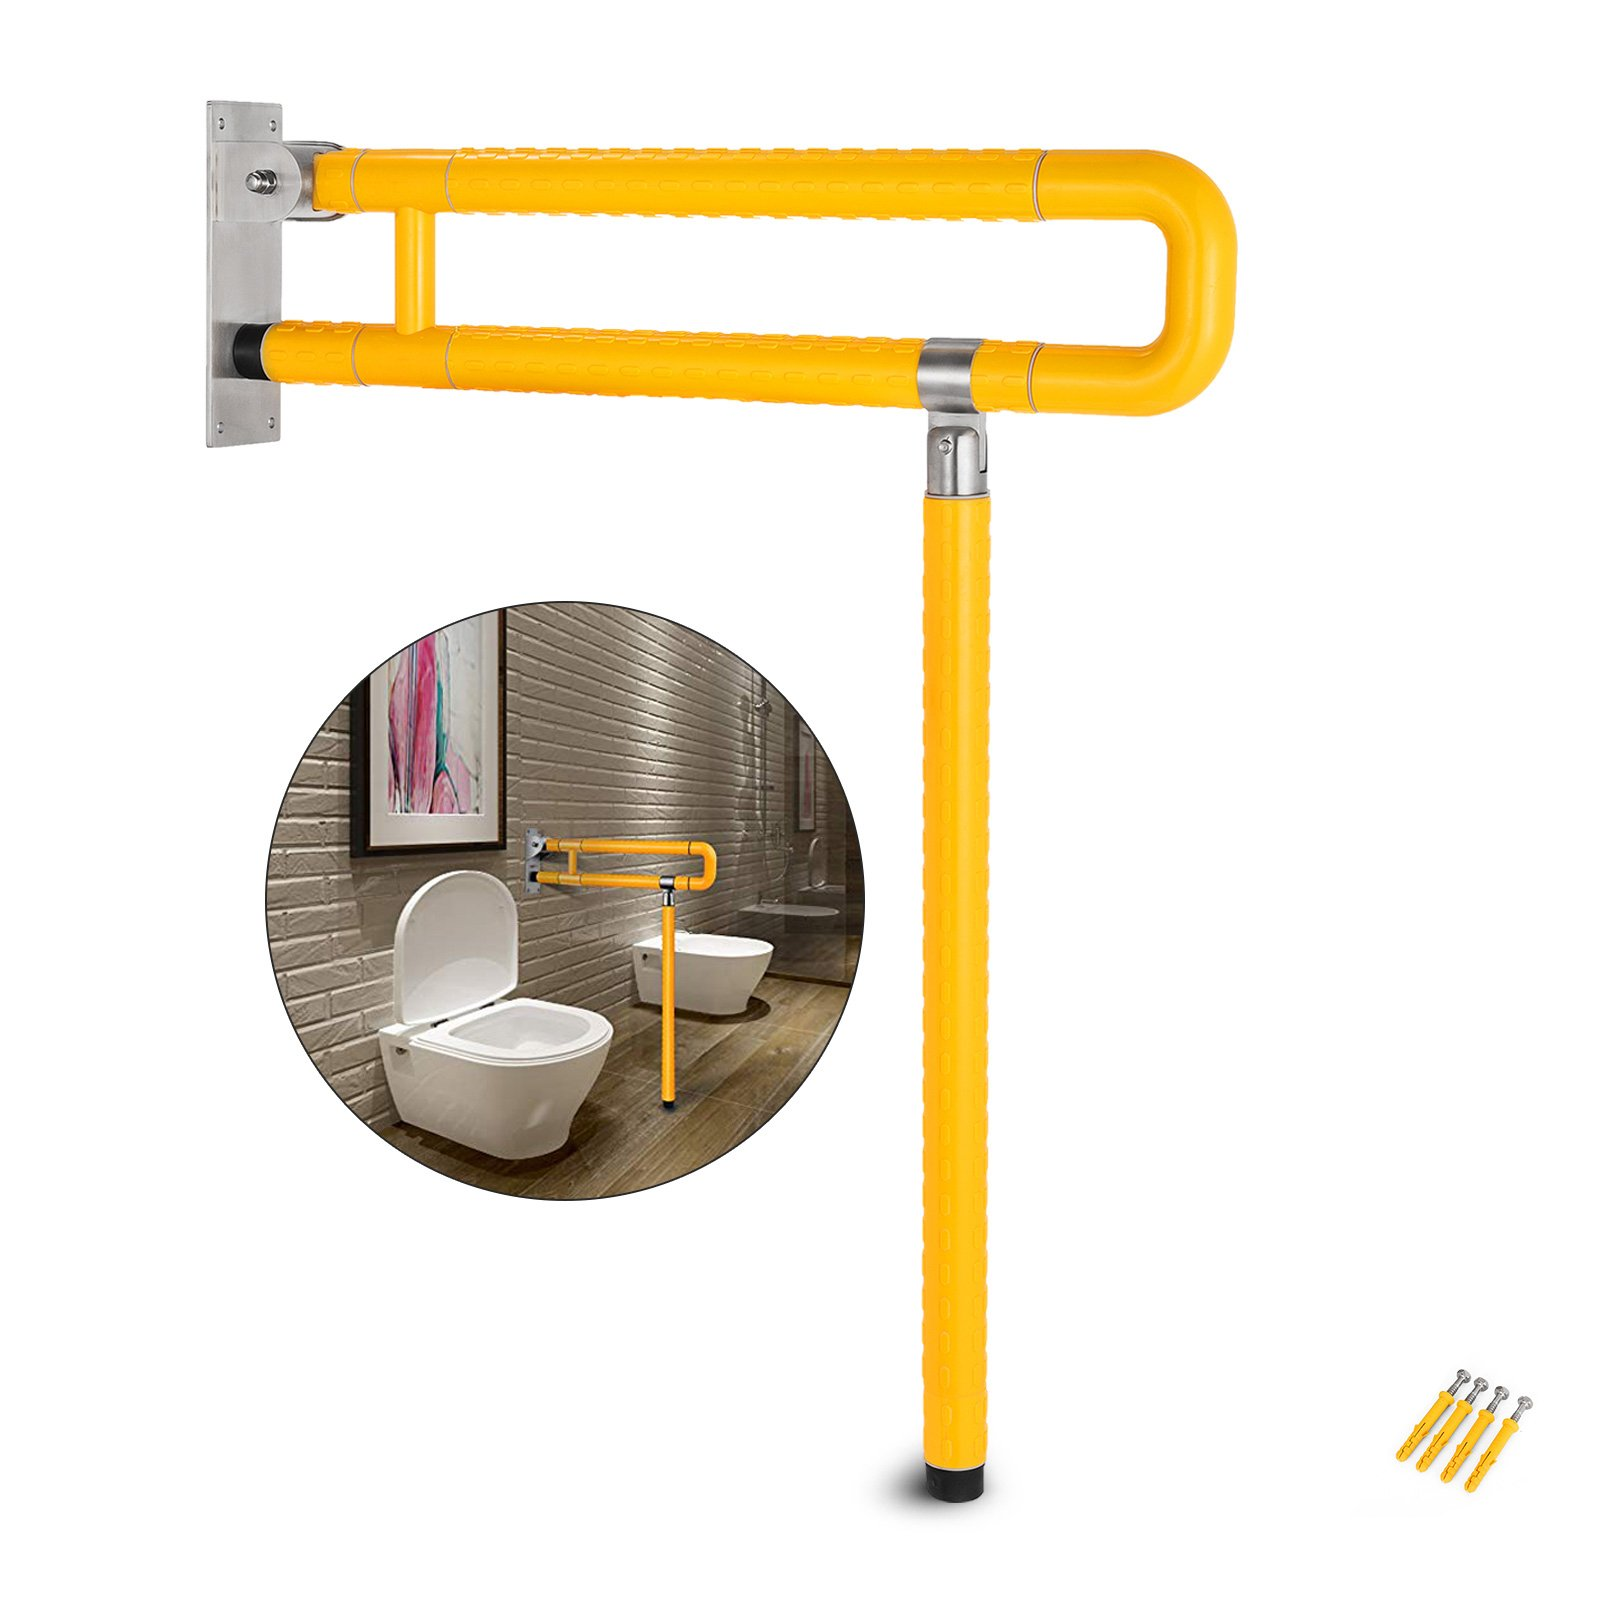 VEVOR Foldable Toilet Grab Bar Safety Frame Rails Flip-up Skid Resistance Handicap Bathroom Seat Support Bar Toilet Hand Grips for Home Hotel Disabled Aid Pregnant Elderly R-Shape Rail (Yellow R)